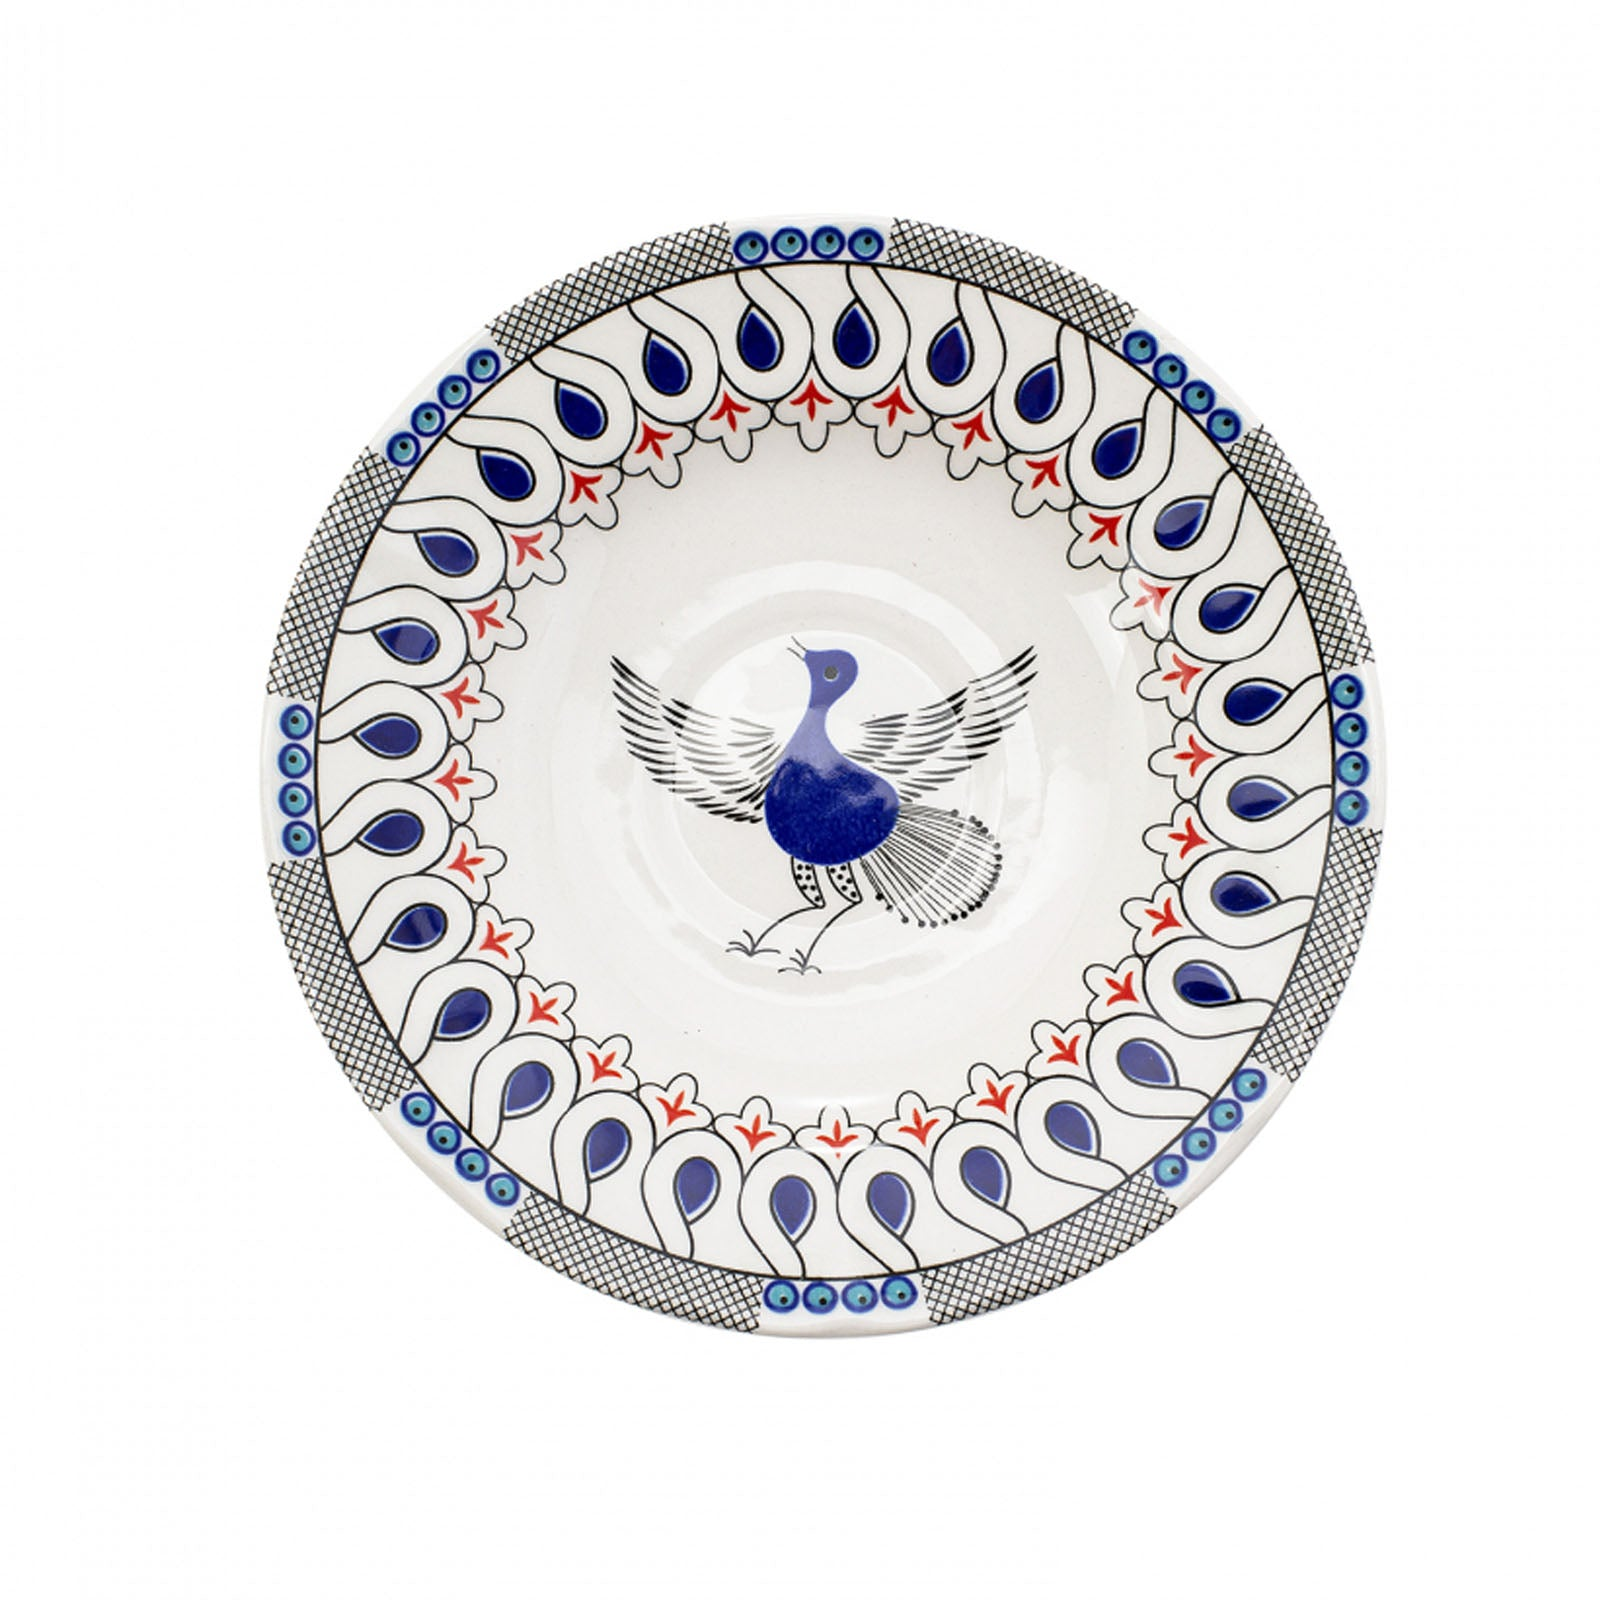 Mai Seljuk Series Tea Cup for 2 153.03.07.9017